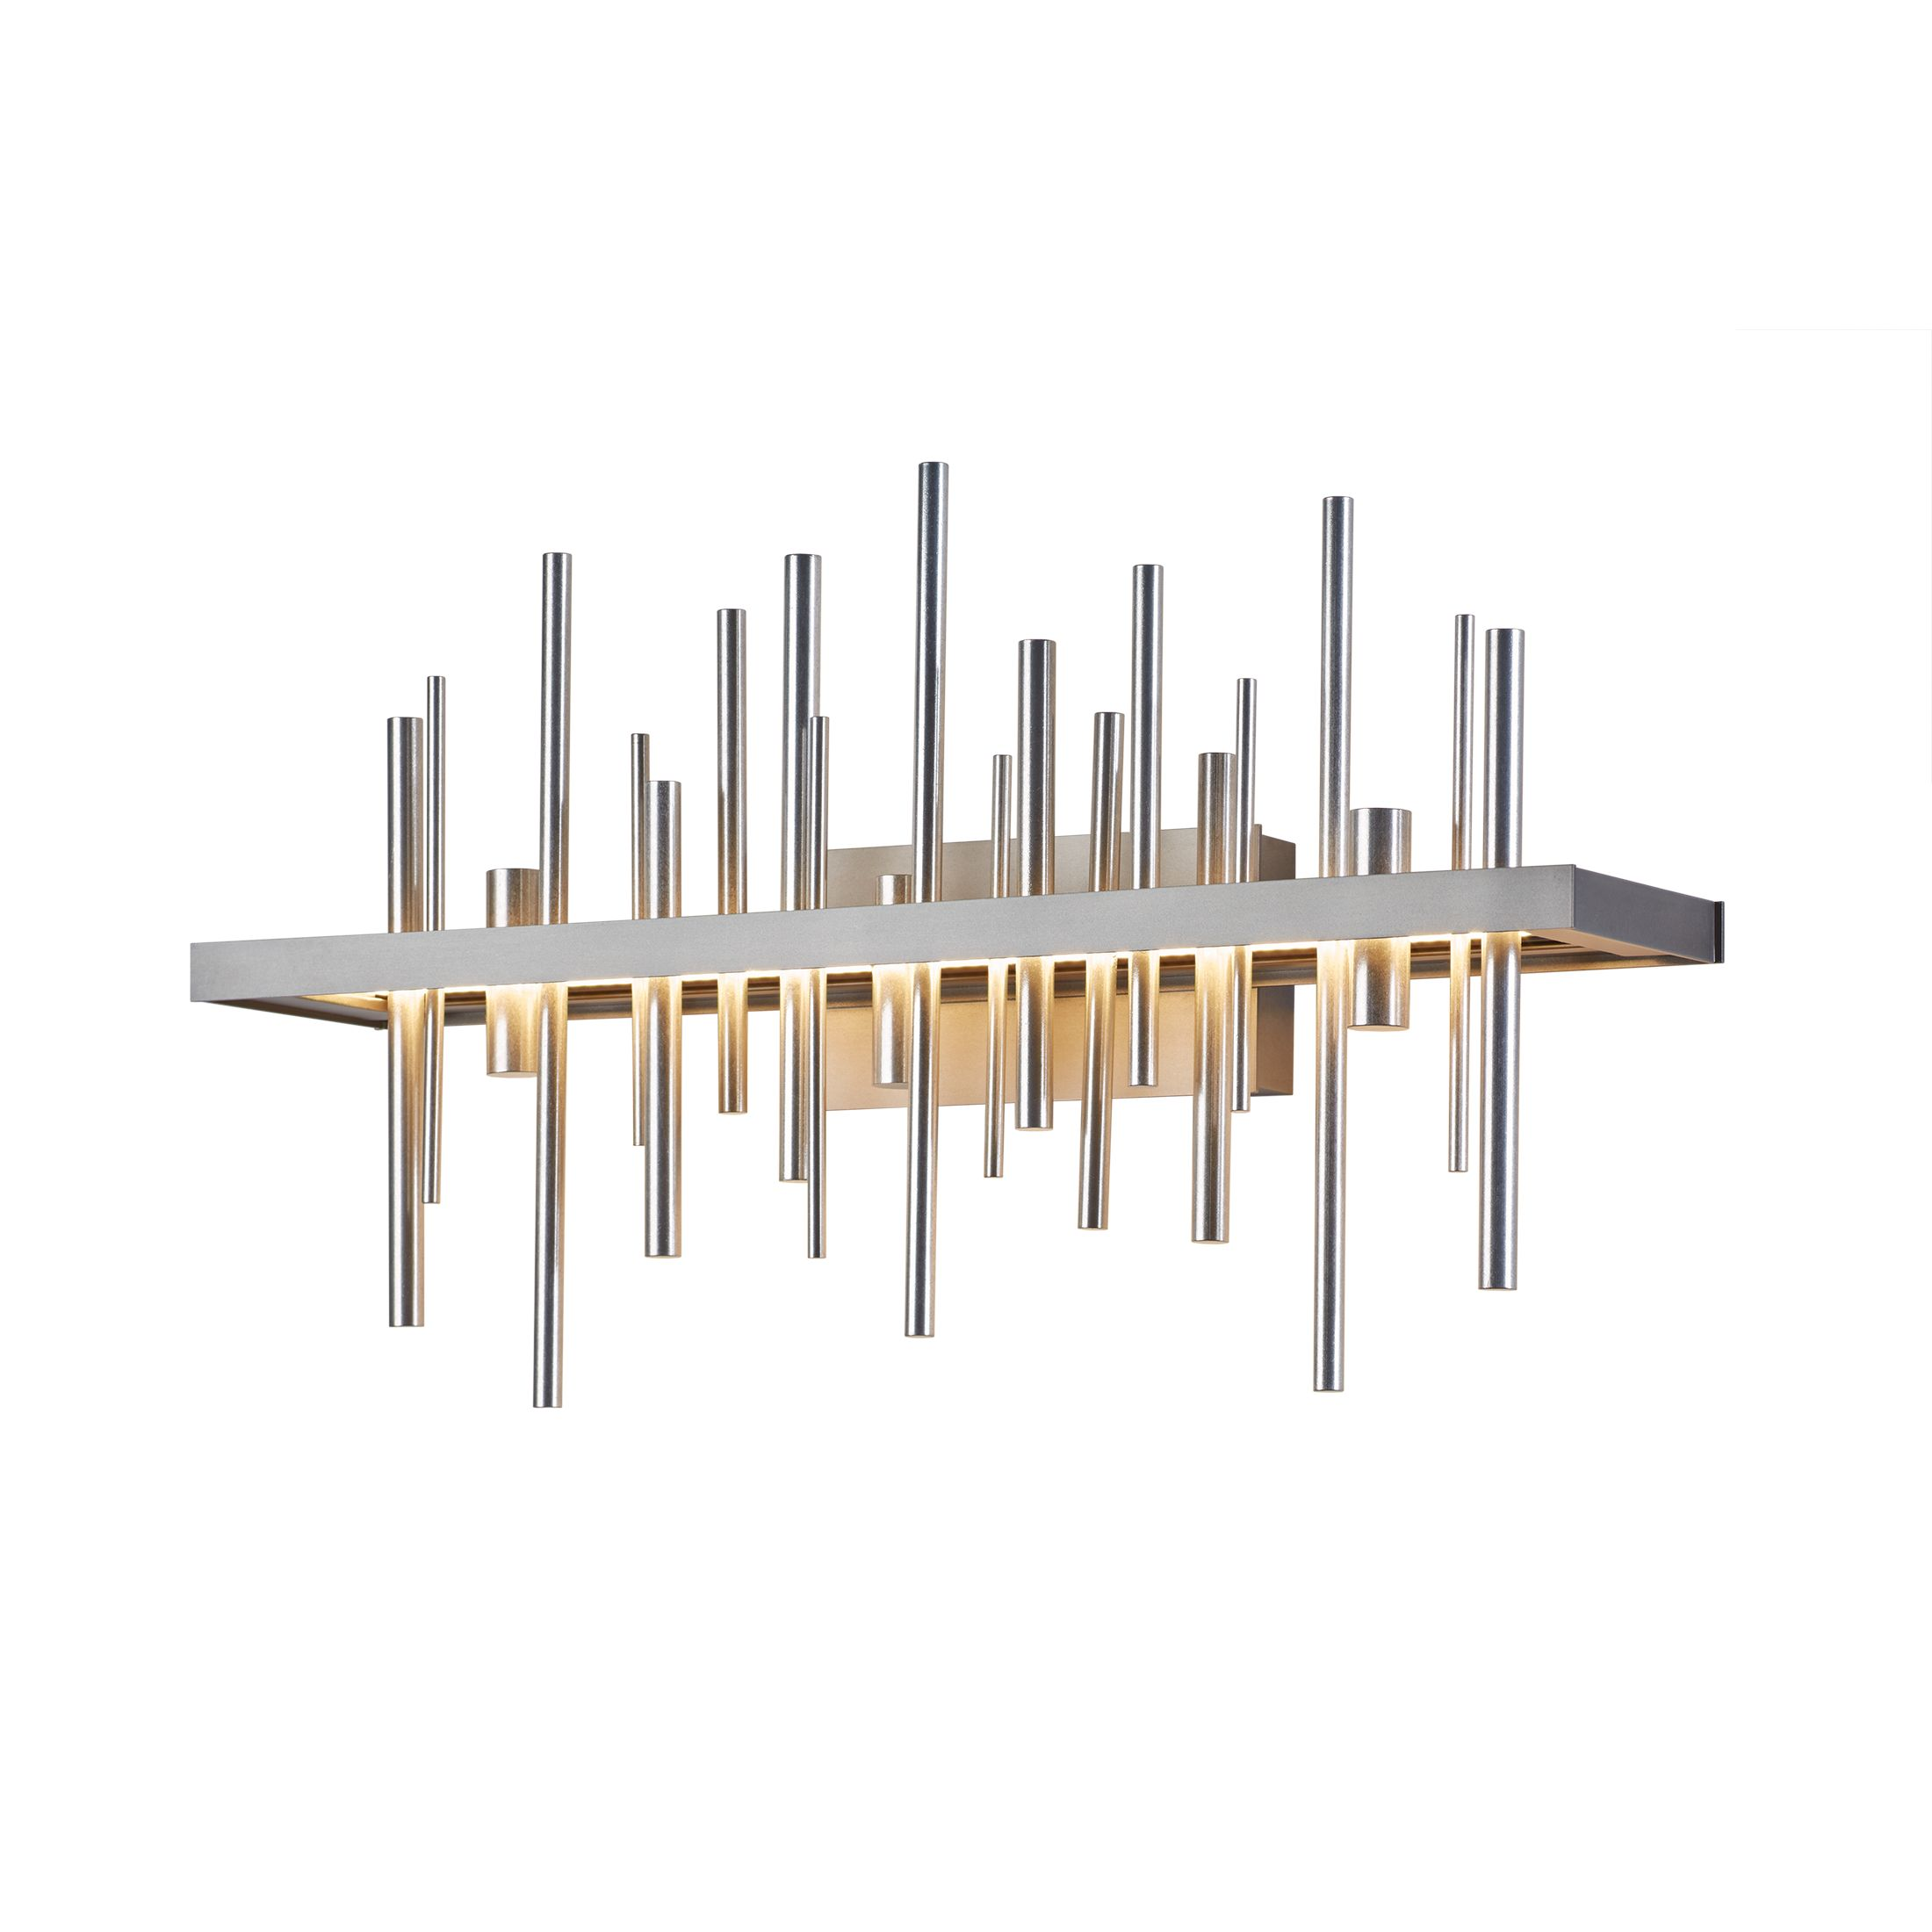 Thumbnail for Cityscape LED Sconce